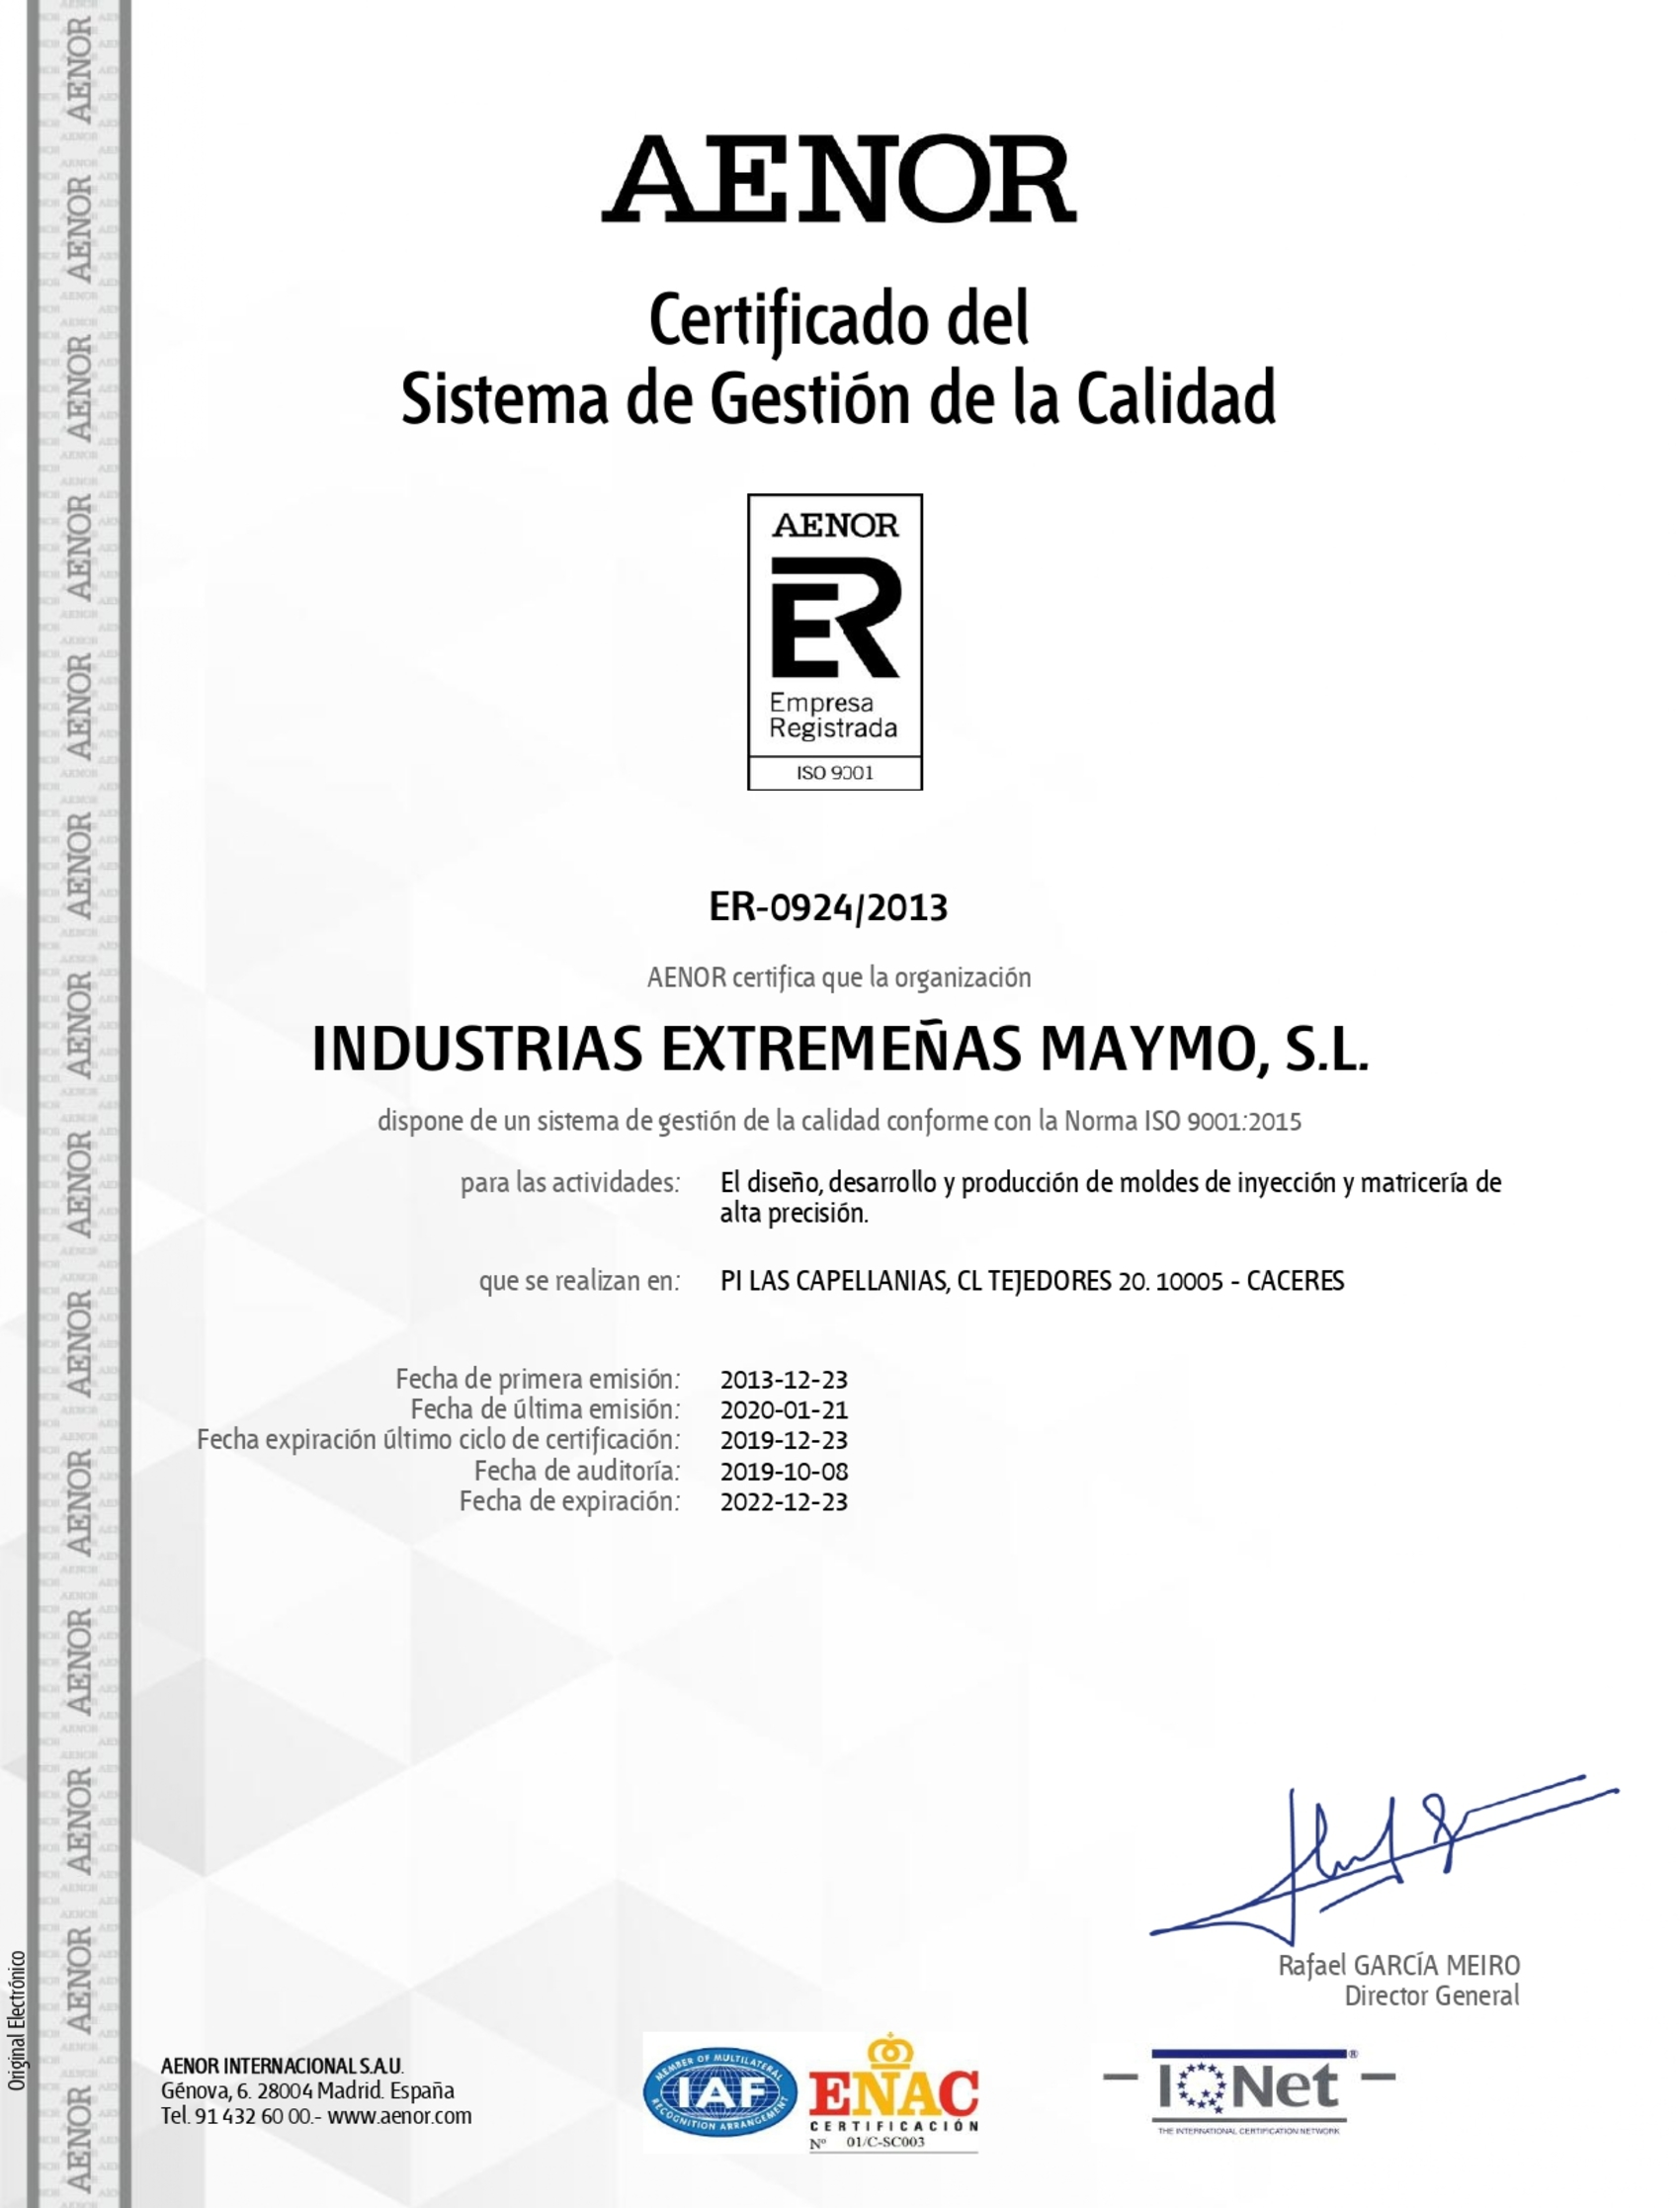 Spanish AENOR Certificate